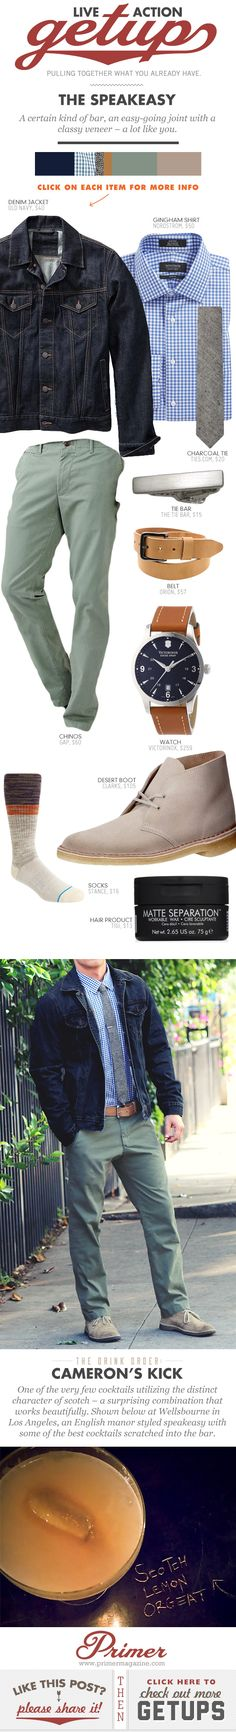 Outfit that you could actually afford.  Don't overpay. #men  #fashion #affordable